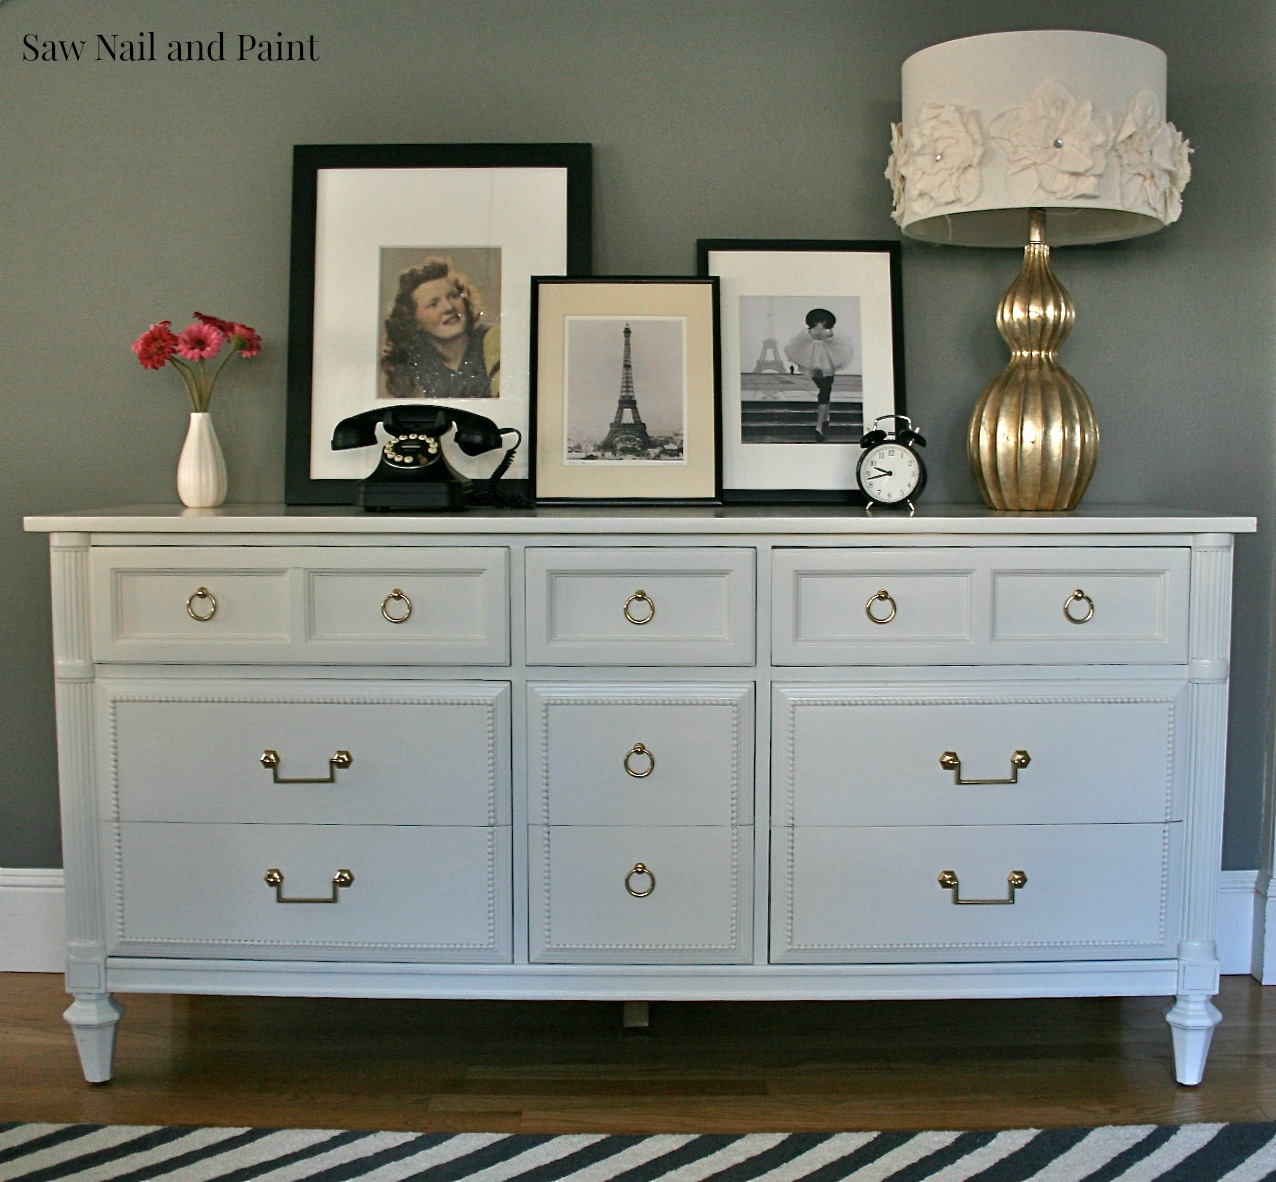 Antique White Thomasville Dresser Saw Nail And Paint